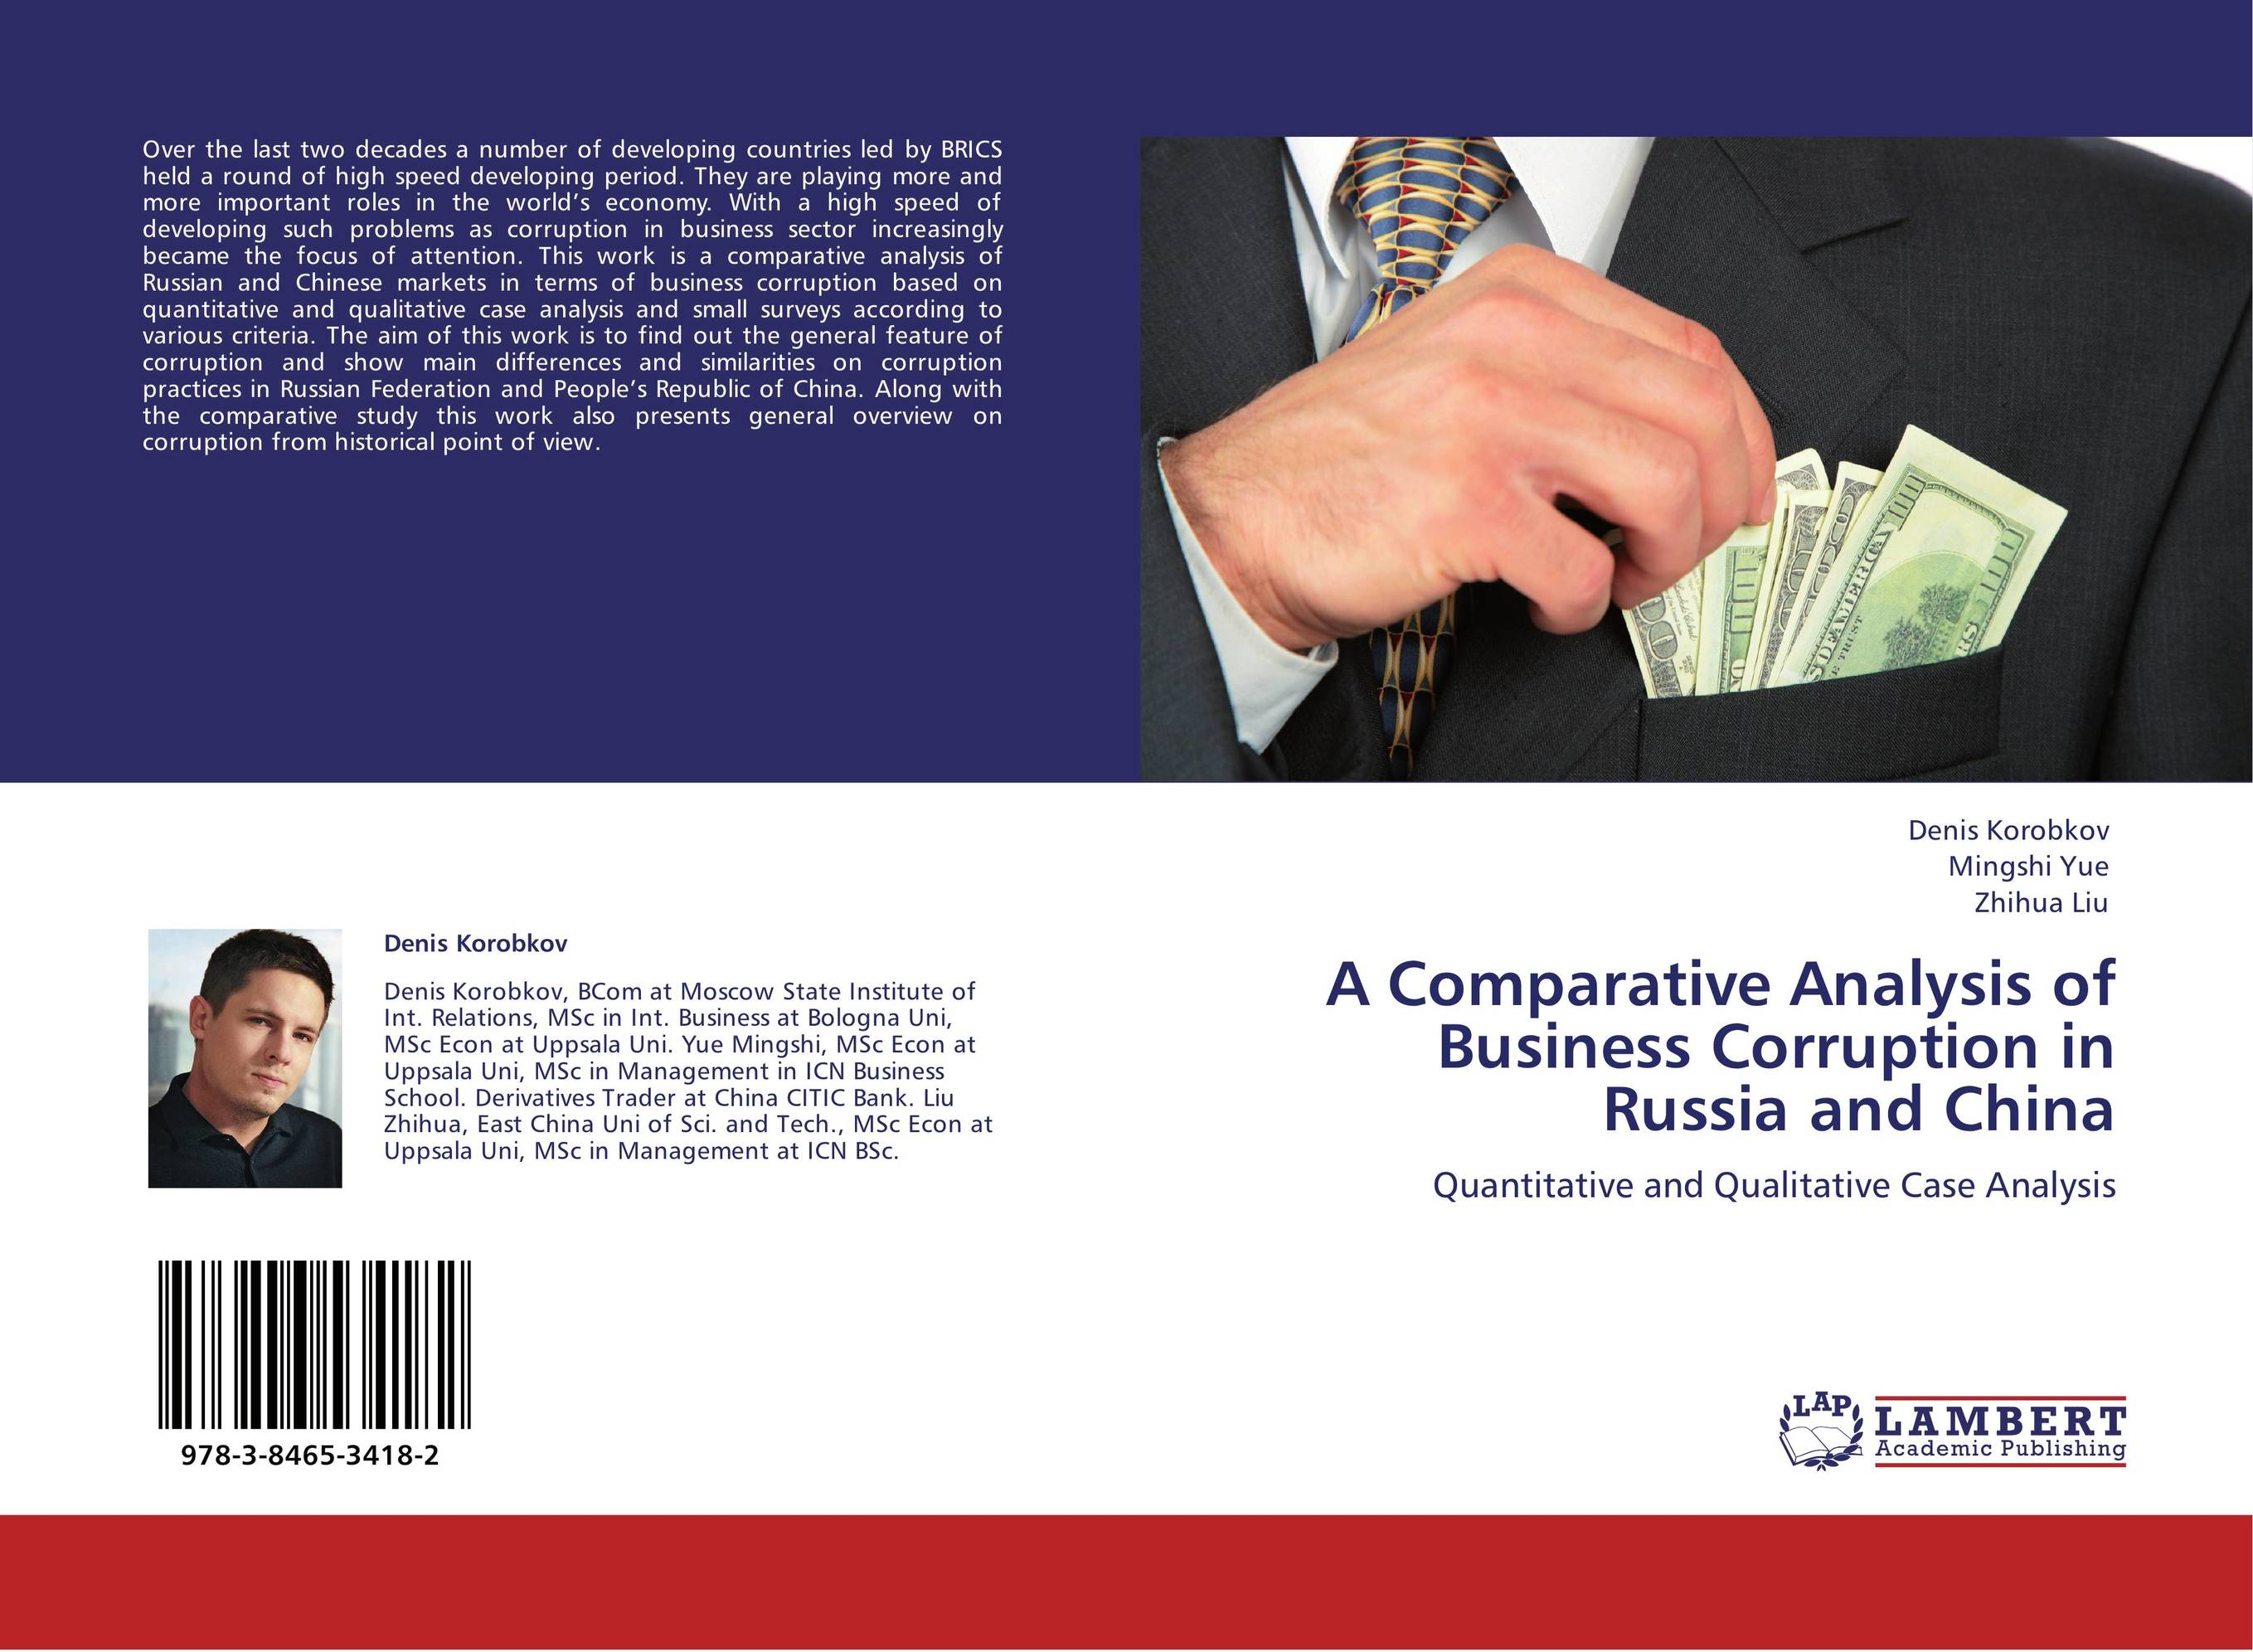 case analysis corruption in china Walmart china case analysis walmart-world's largest retailer, is a successful as a king of retailing in us market after this success, wal-mart stores started eyeing areas beyond its home country and looking at unchartered waters in the overseas markets.